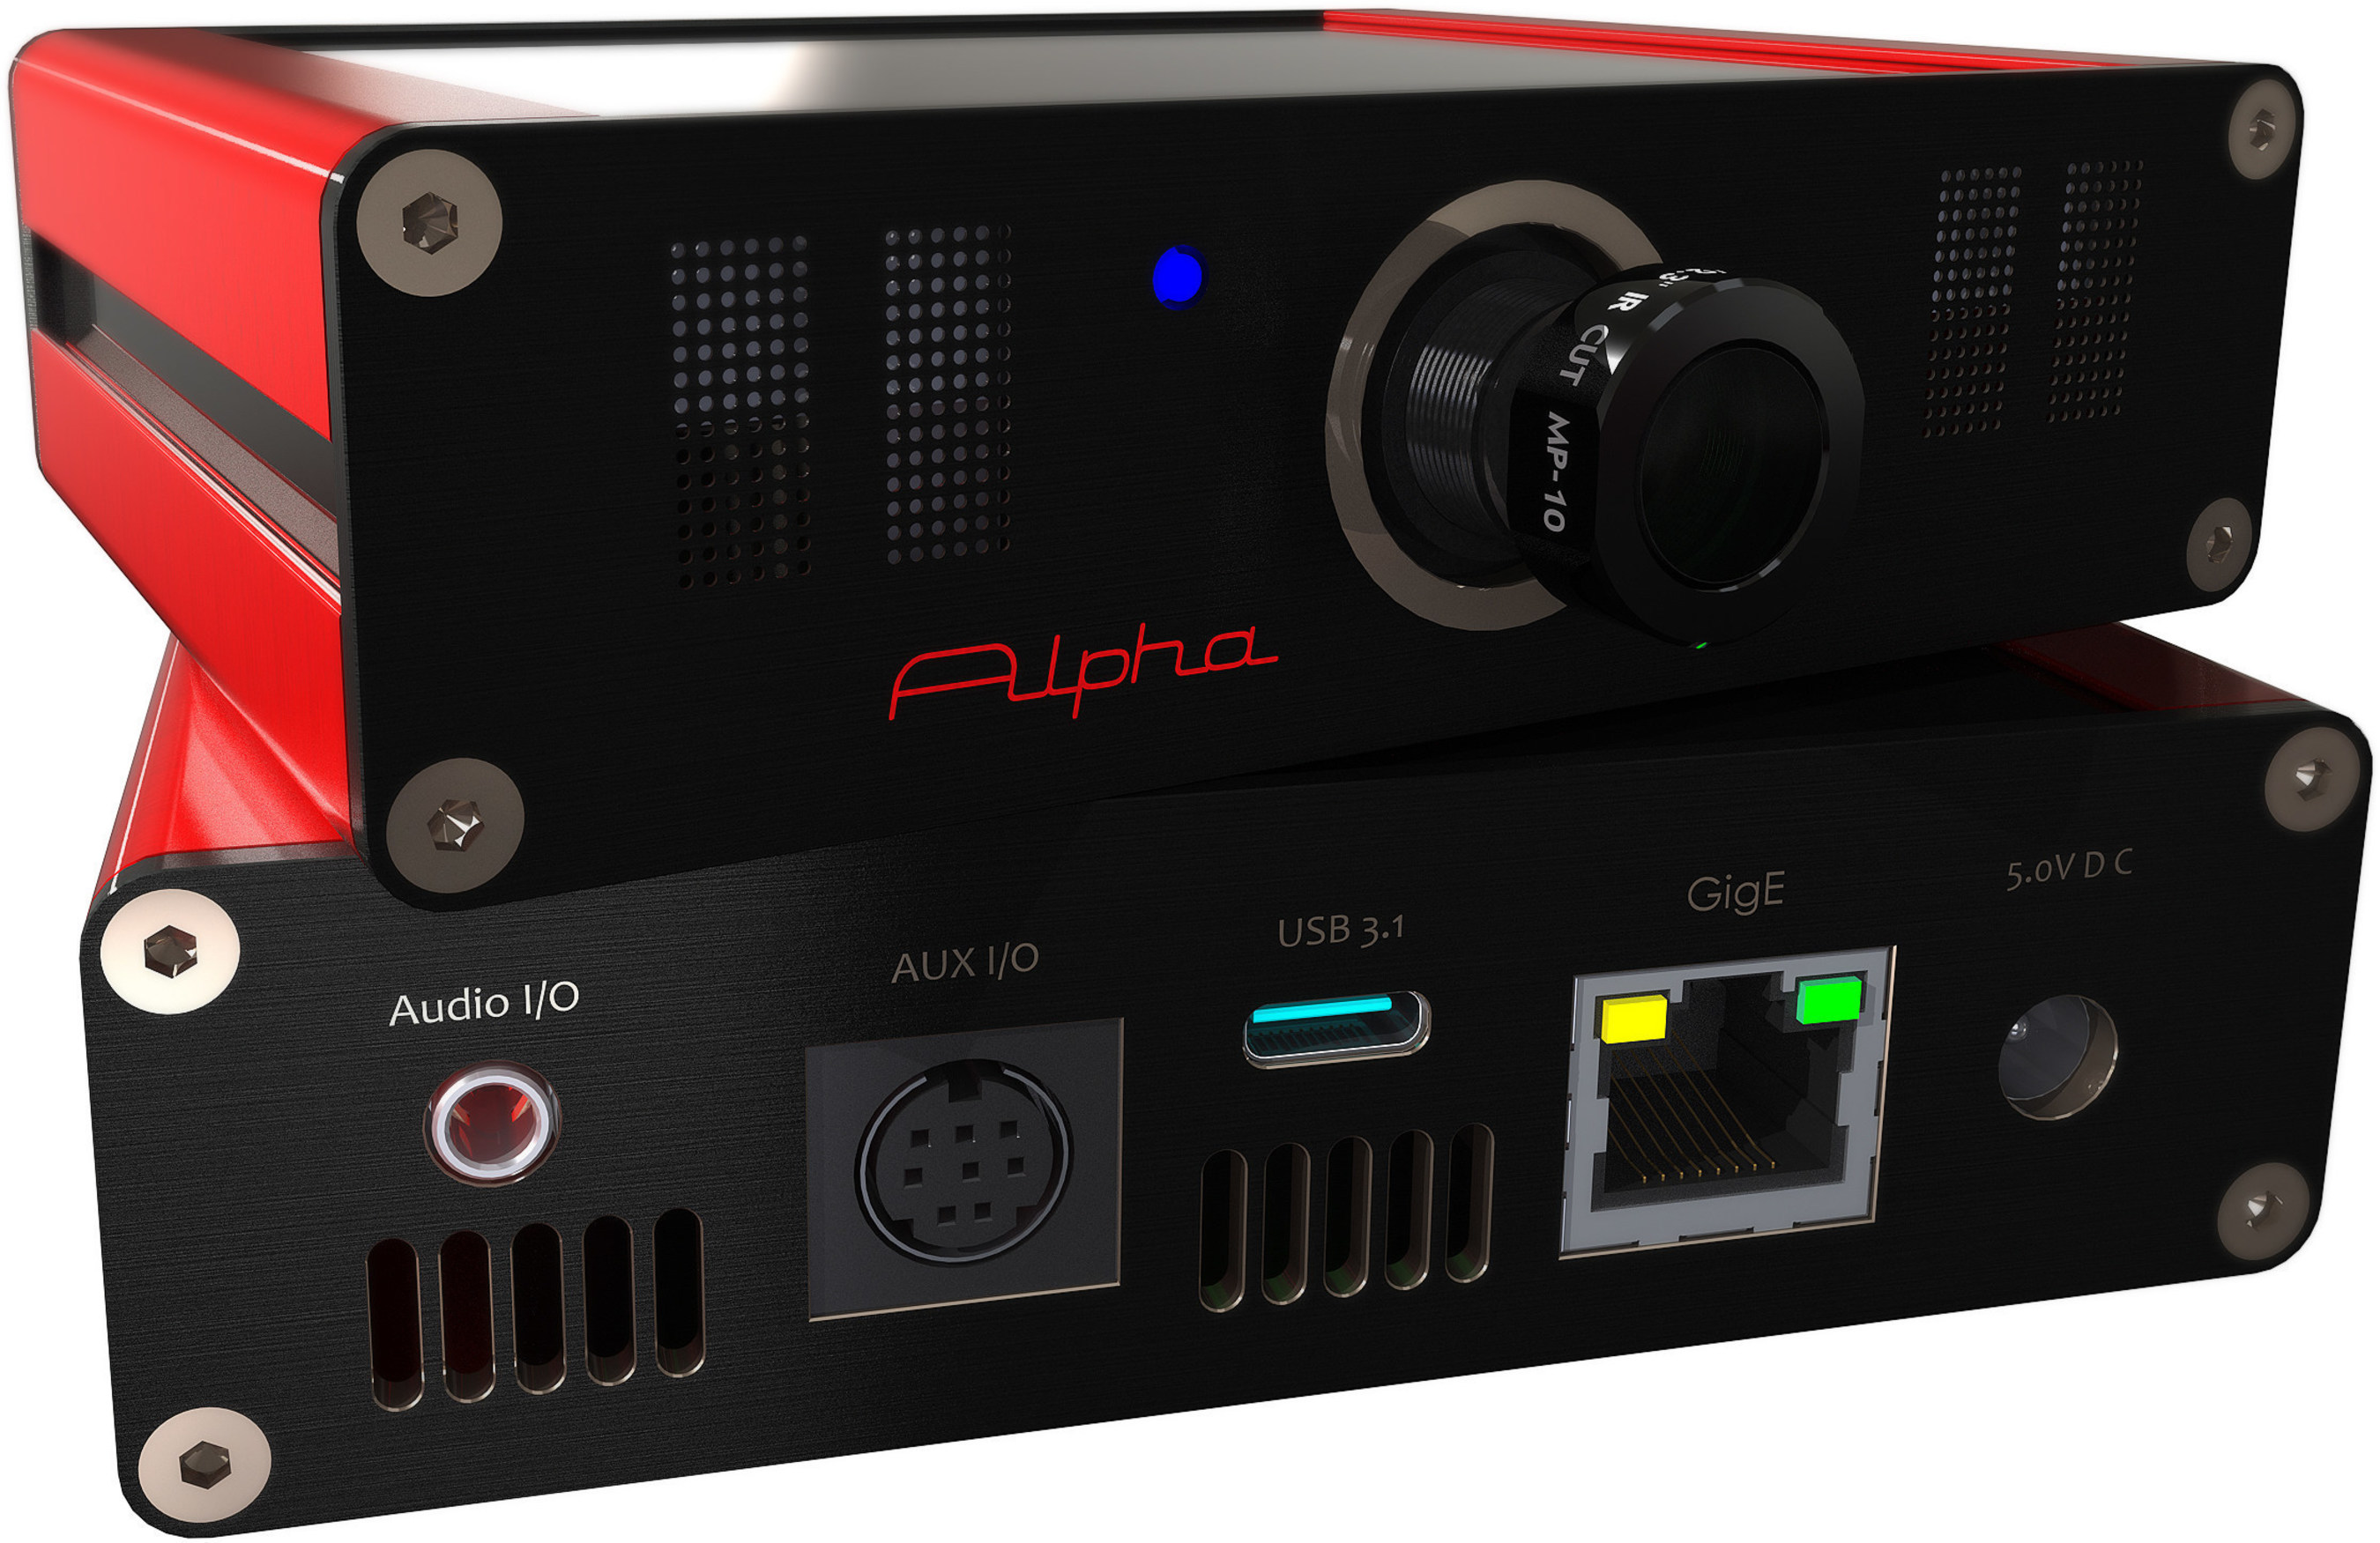 Pictured is the SUB2r Alpha open-architecture camera, which leverages the Cypress EZ-USB FX3 SuperSpeed USB controller to stream uncompressed, high-definition video. The programmable FX3 solution helps enable the camera's users to optimize it for high quality streaming of virtual reality or video game play, motion pictures, 3D imaging, scientific research and many other applications.